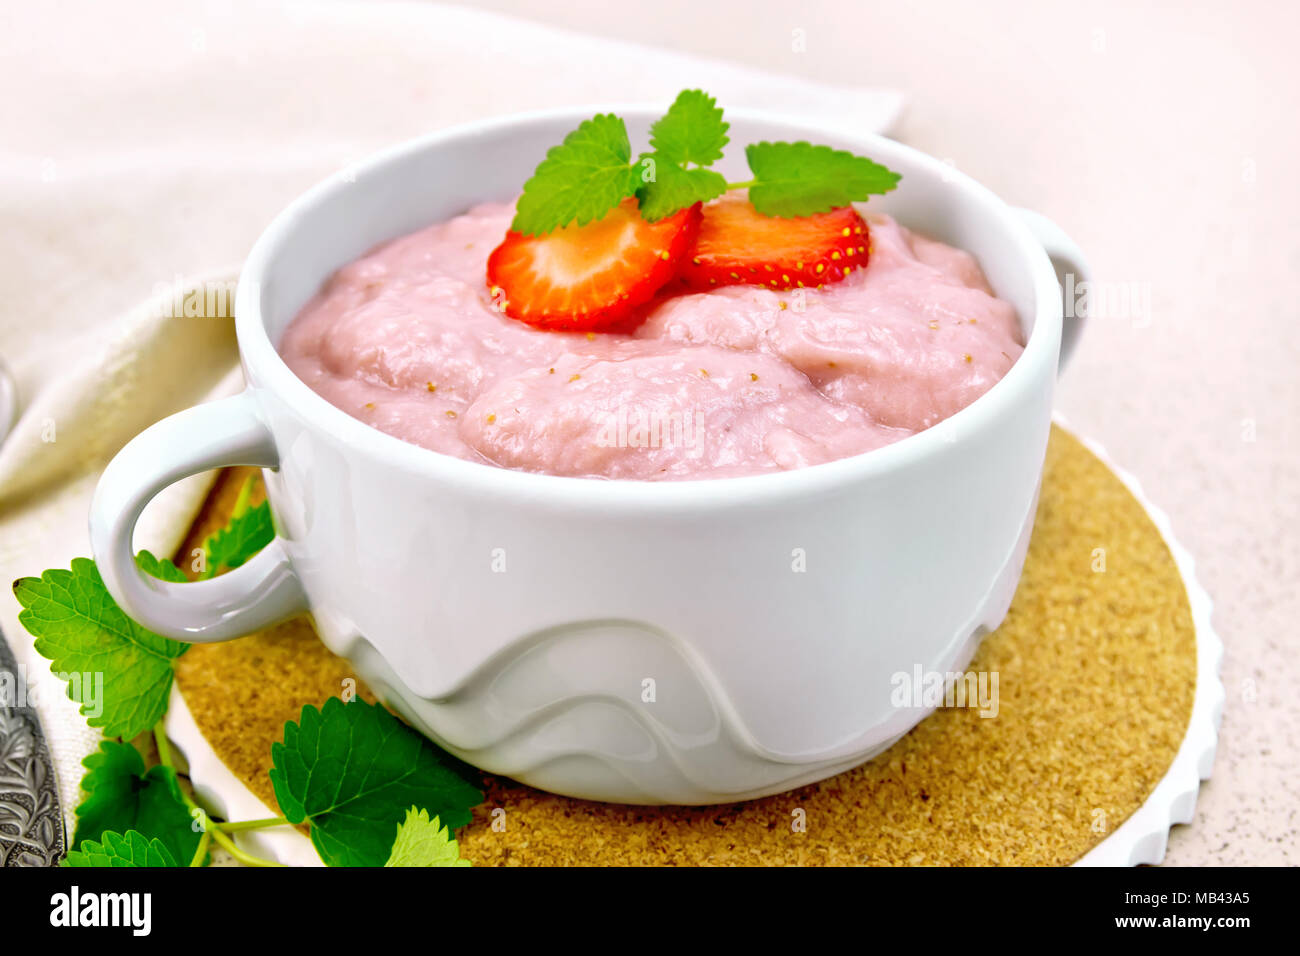 Strawberry soup with berries and mint in a bowl on a stand, a napkin and a spoon on a background of a granite table - Stock Image